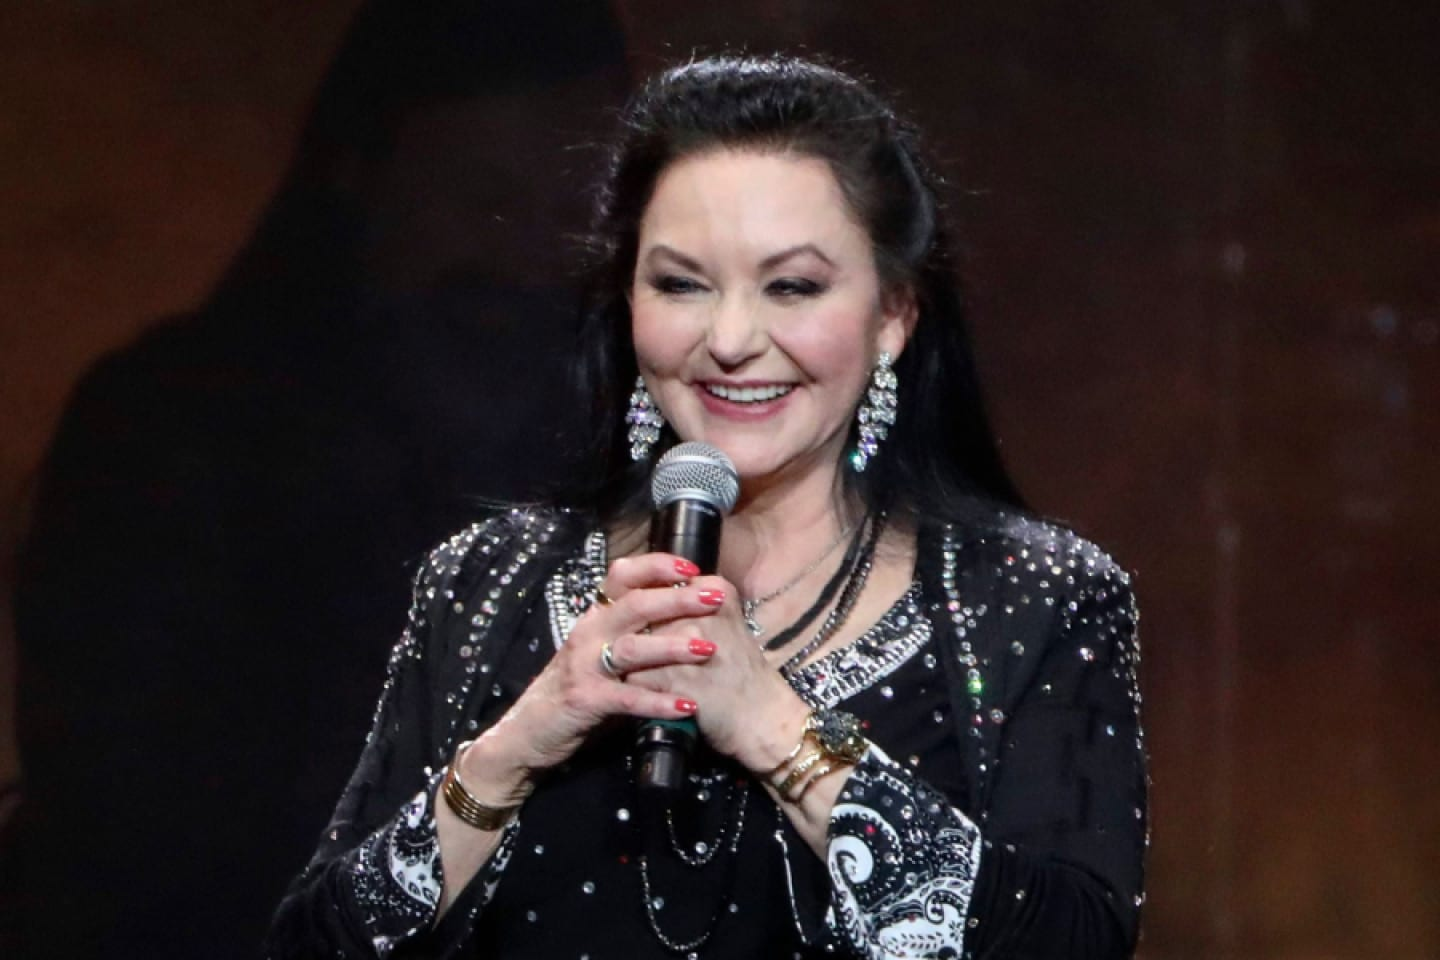 Crystal Gayle, Crystal, Gayle, You Don't Know Me